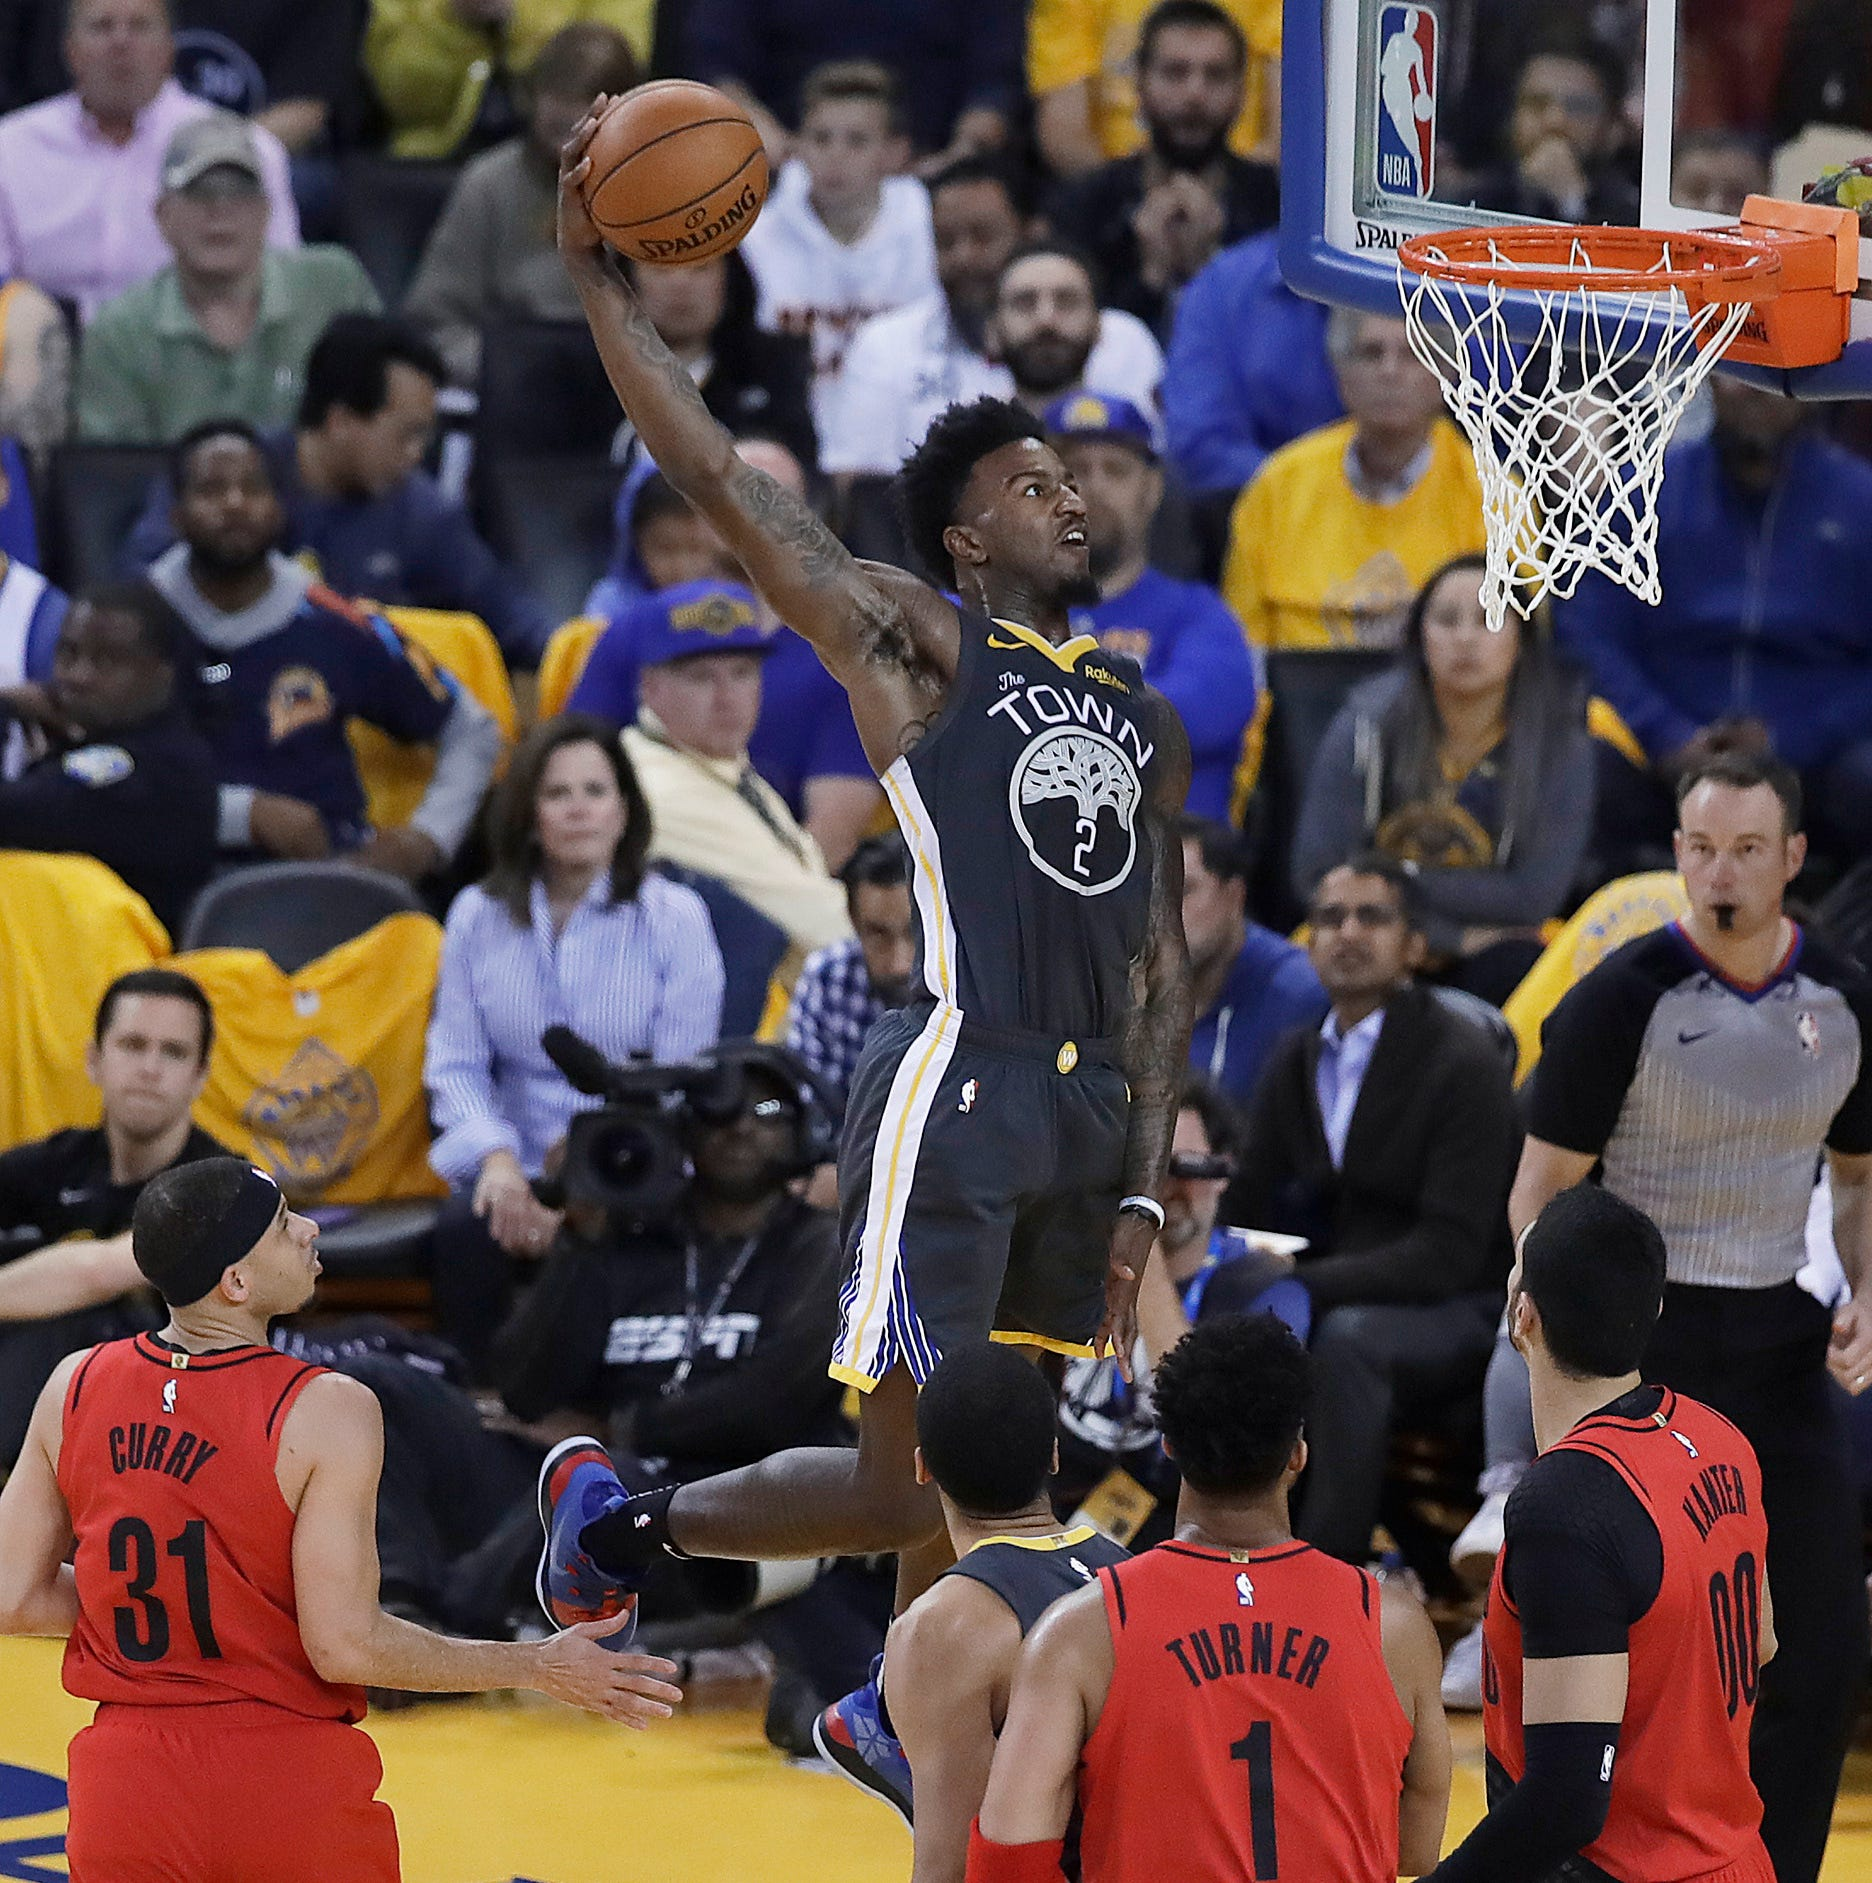 Warriors rally from 15 down at halftime, hold off Trail Blazers